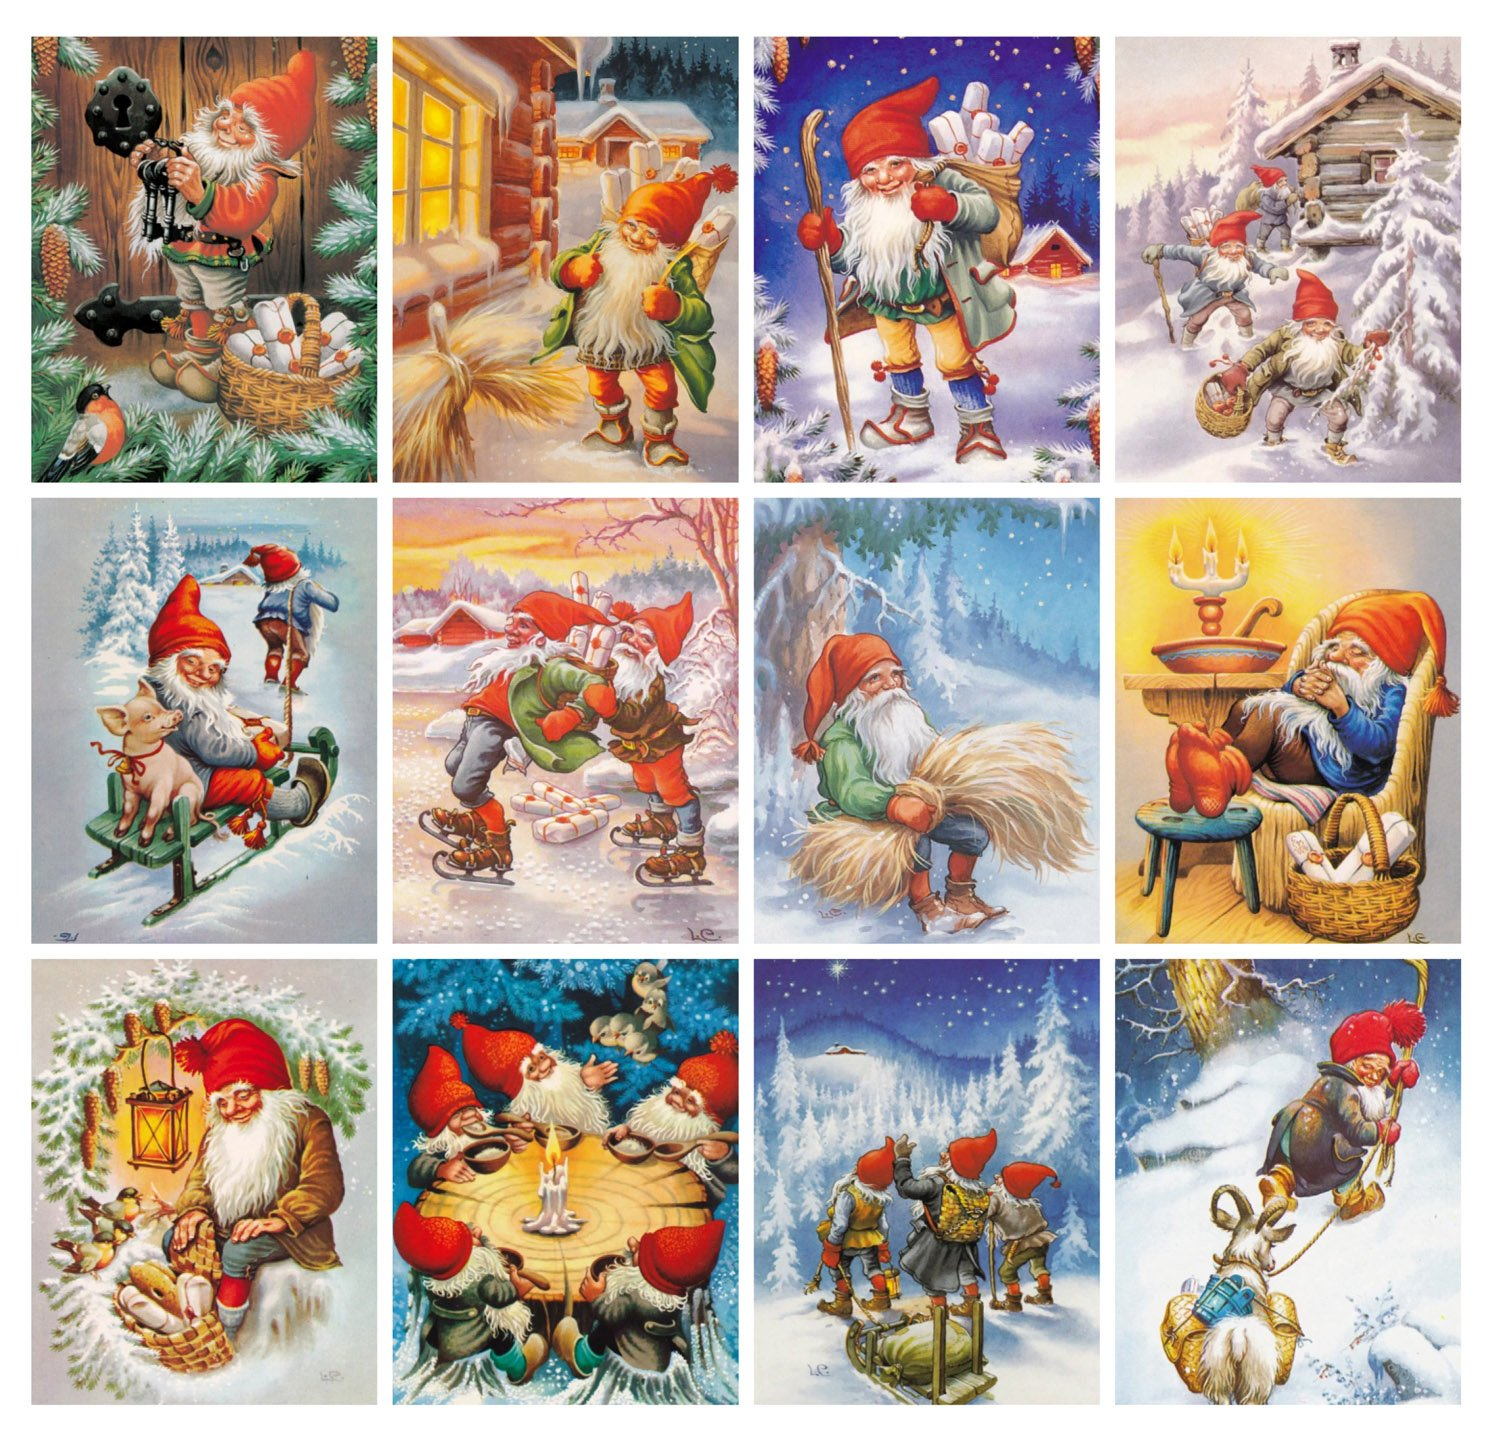 12 pages 8x11 Wall Calendar 2021 Christmas Gnomes by Lars Carlsson Vintage Fantasy Posters Reprint M-710